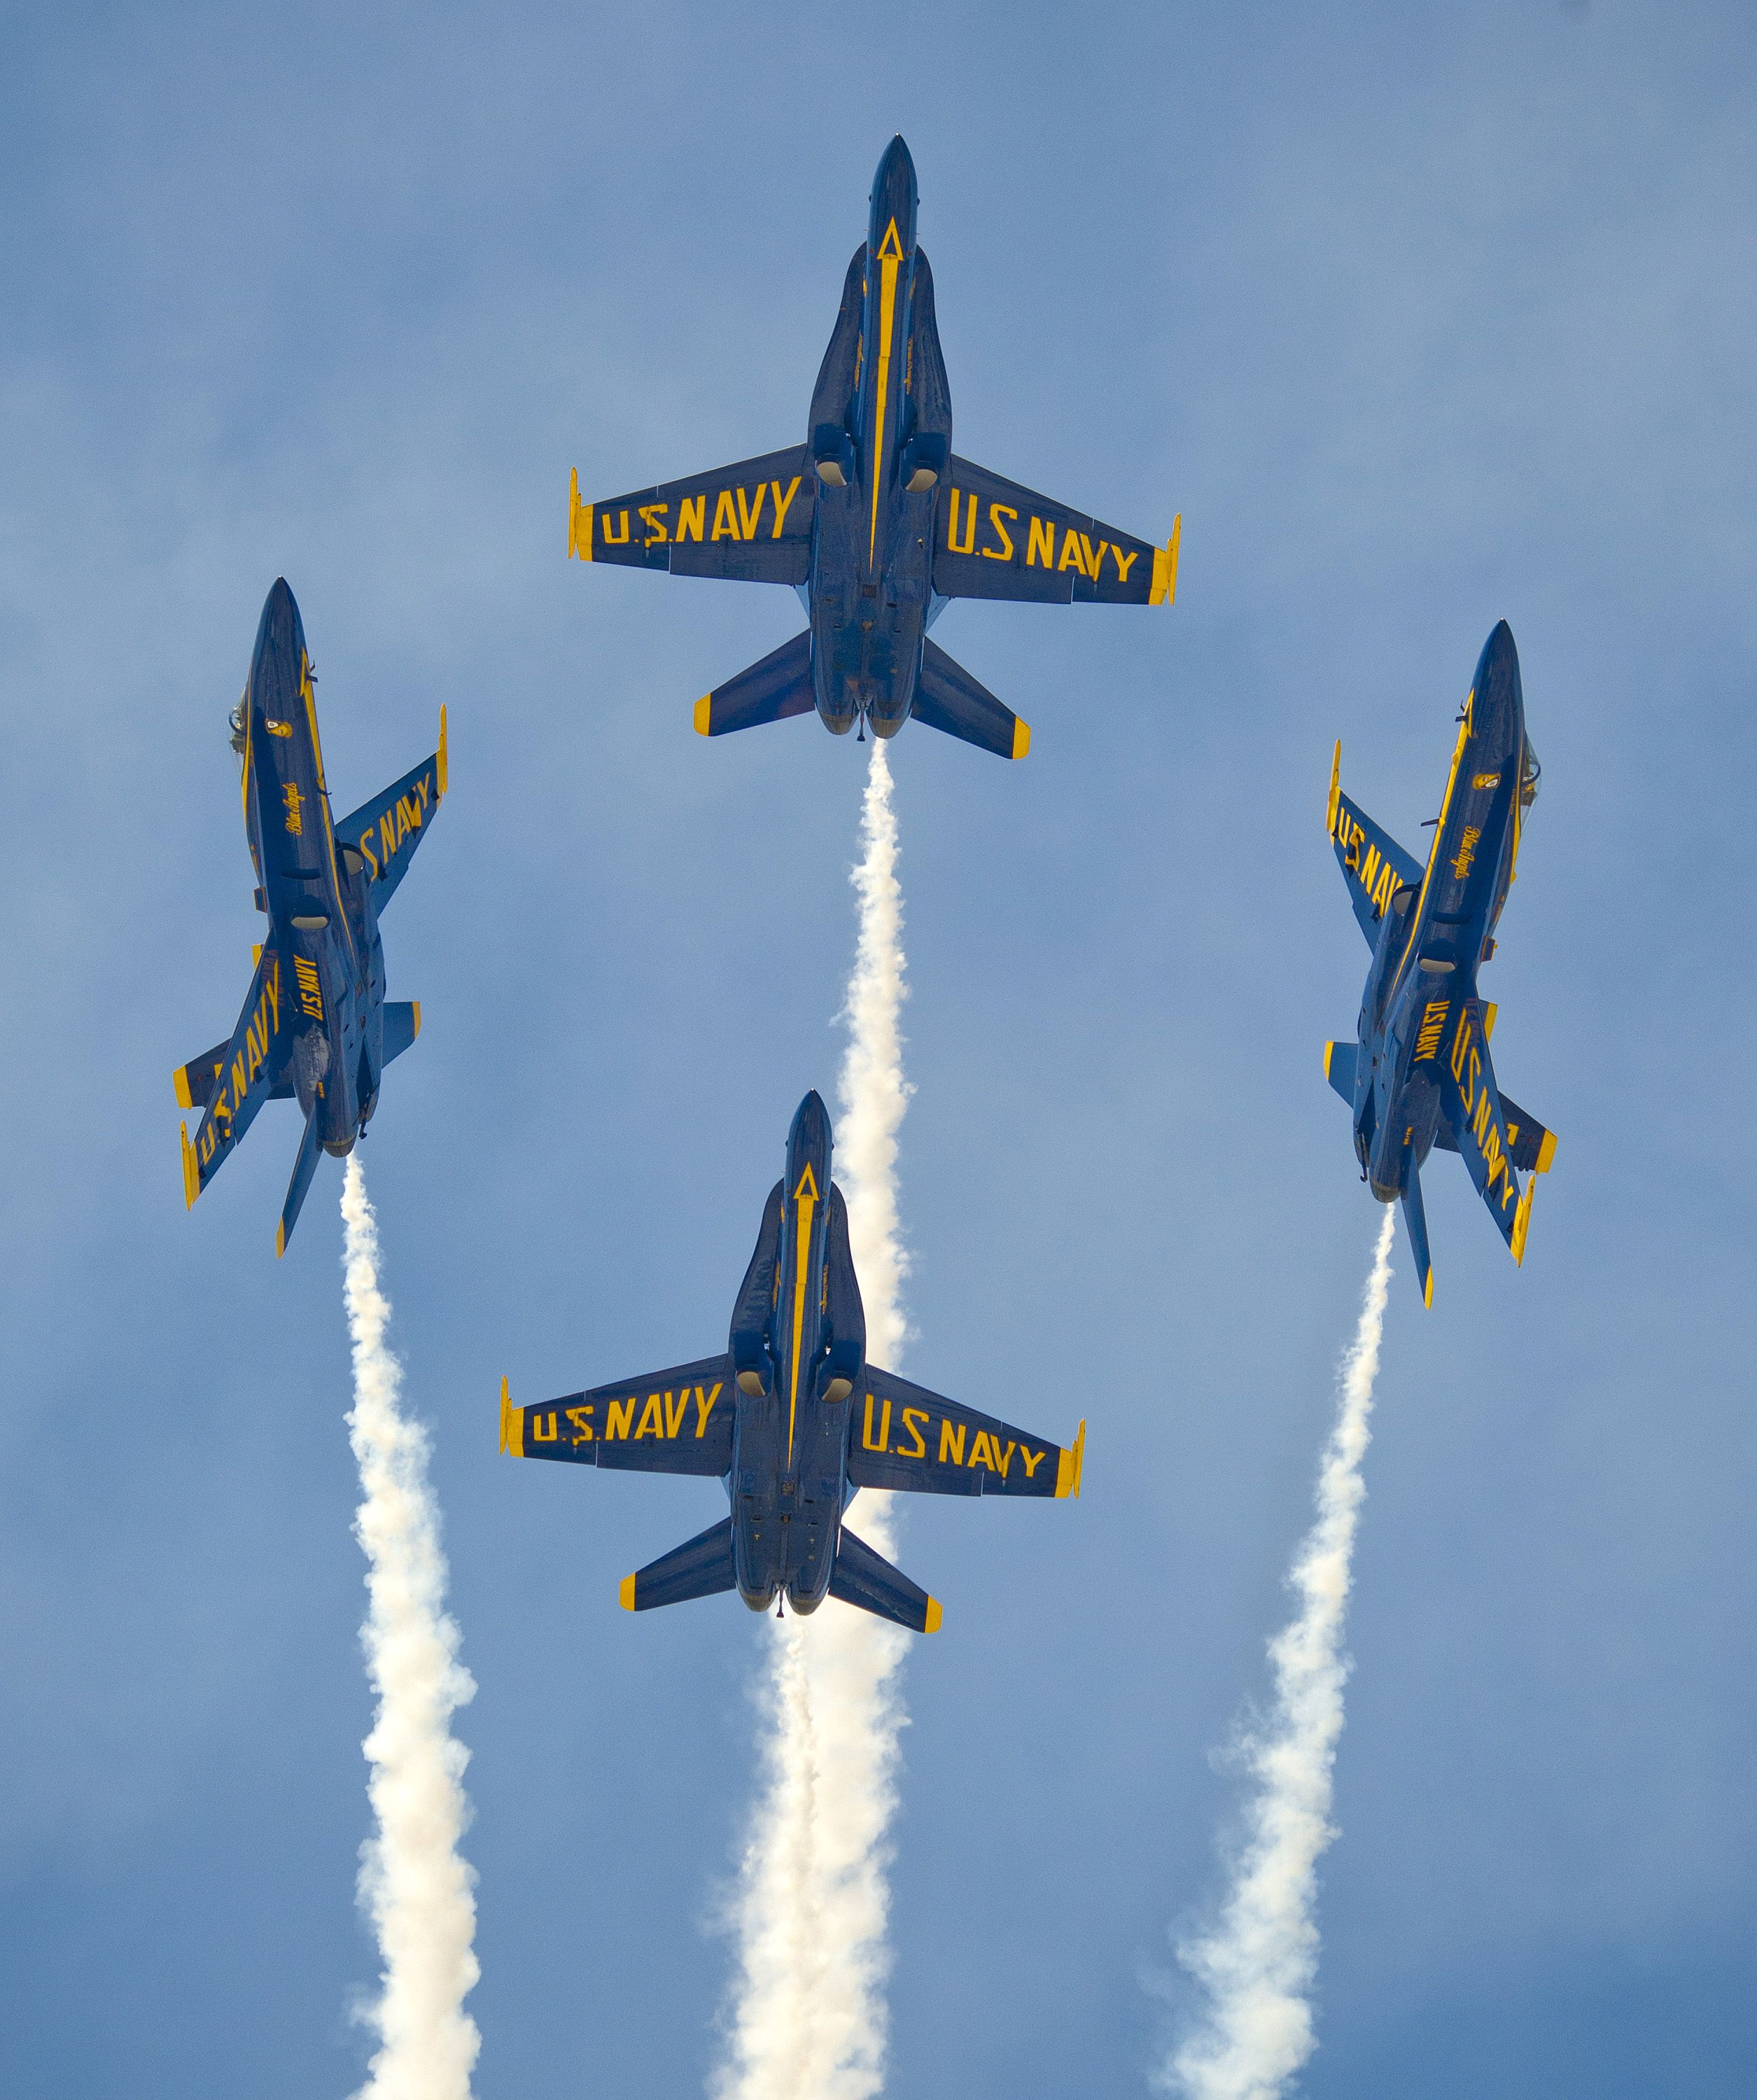 See the Blue angels √ WOW! Based in Pensacola, FL, the